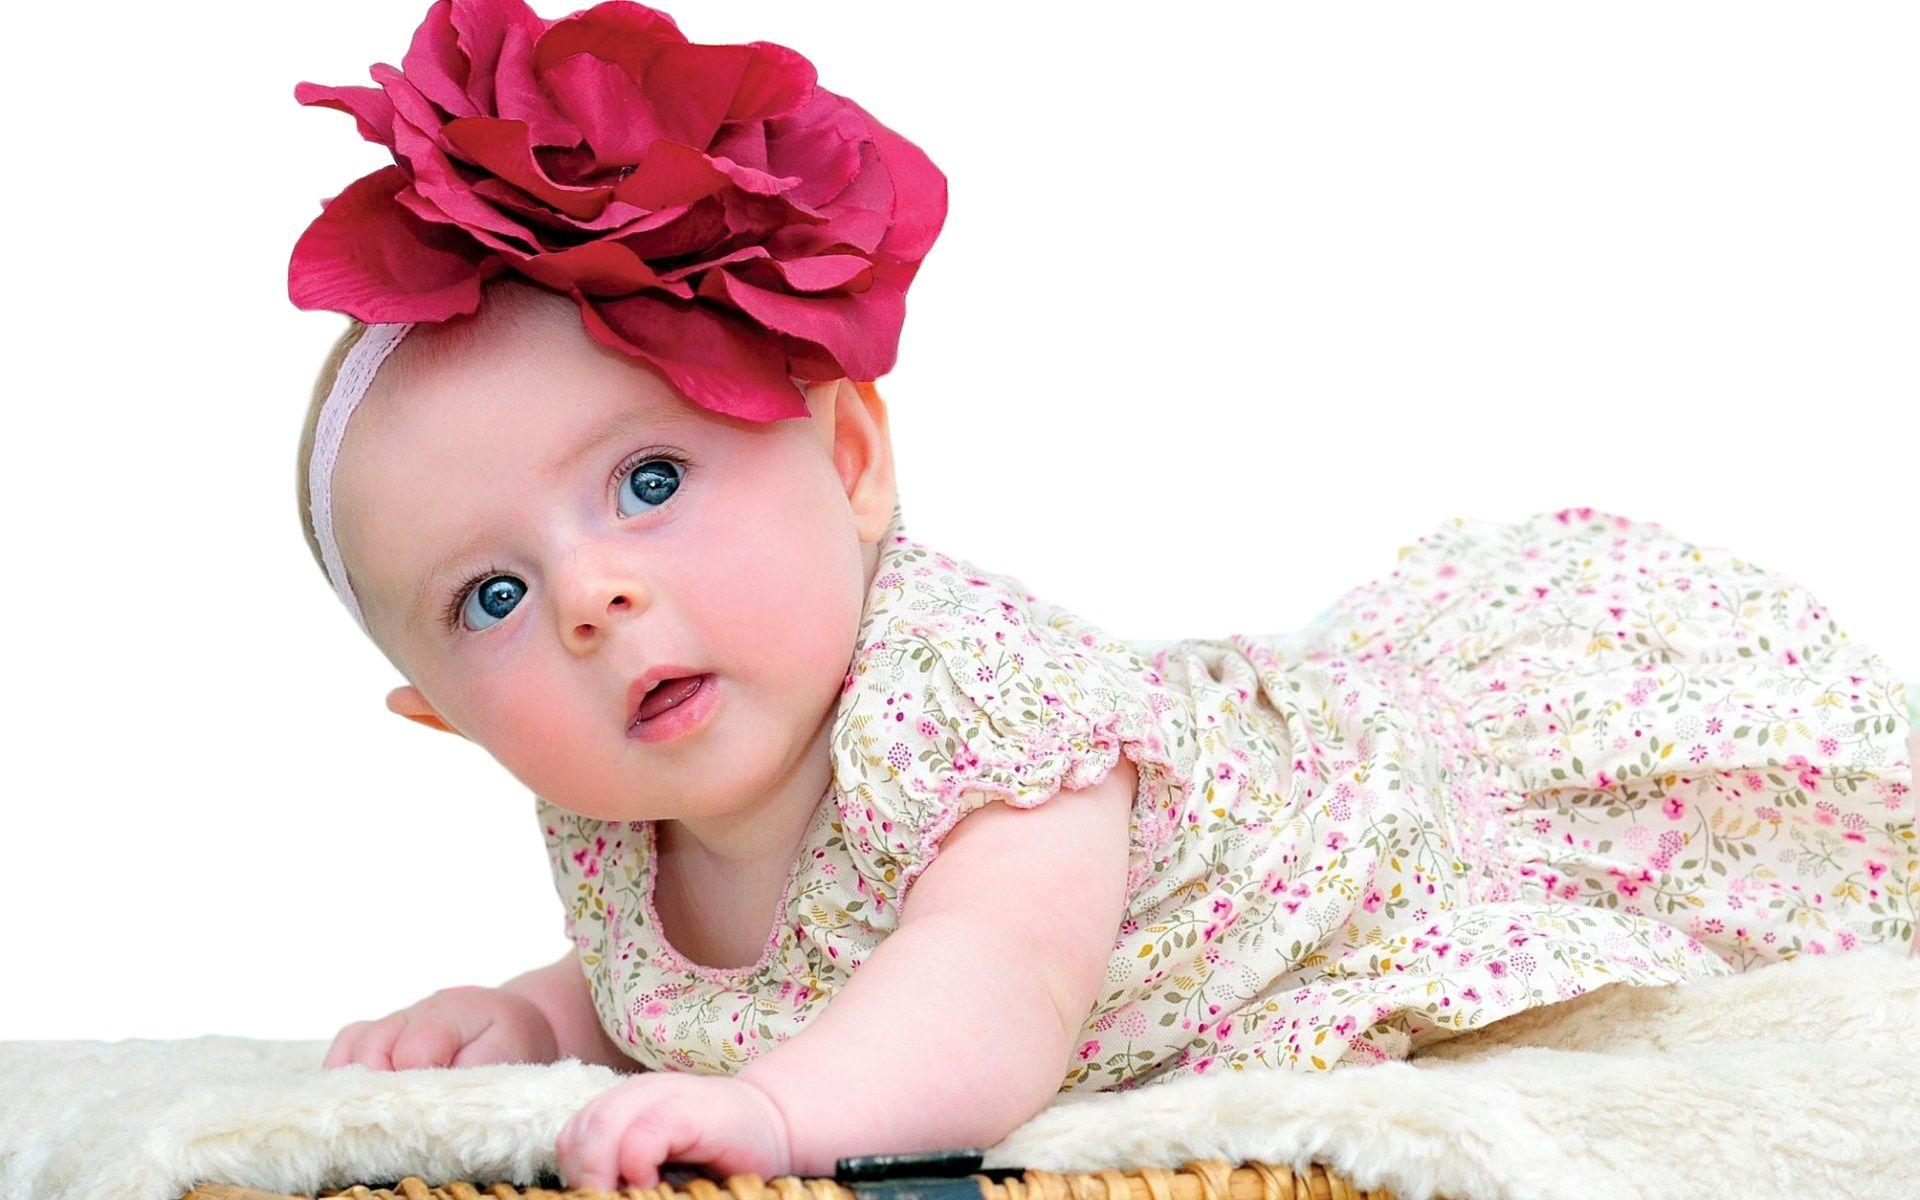 New Born Baby Wallpapers | New Born Baby Backgrounds and Images ...